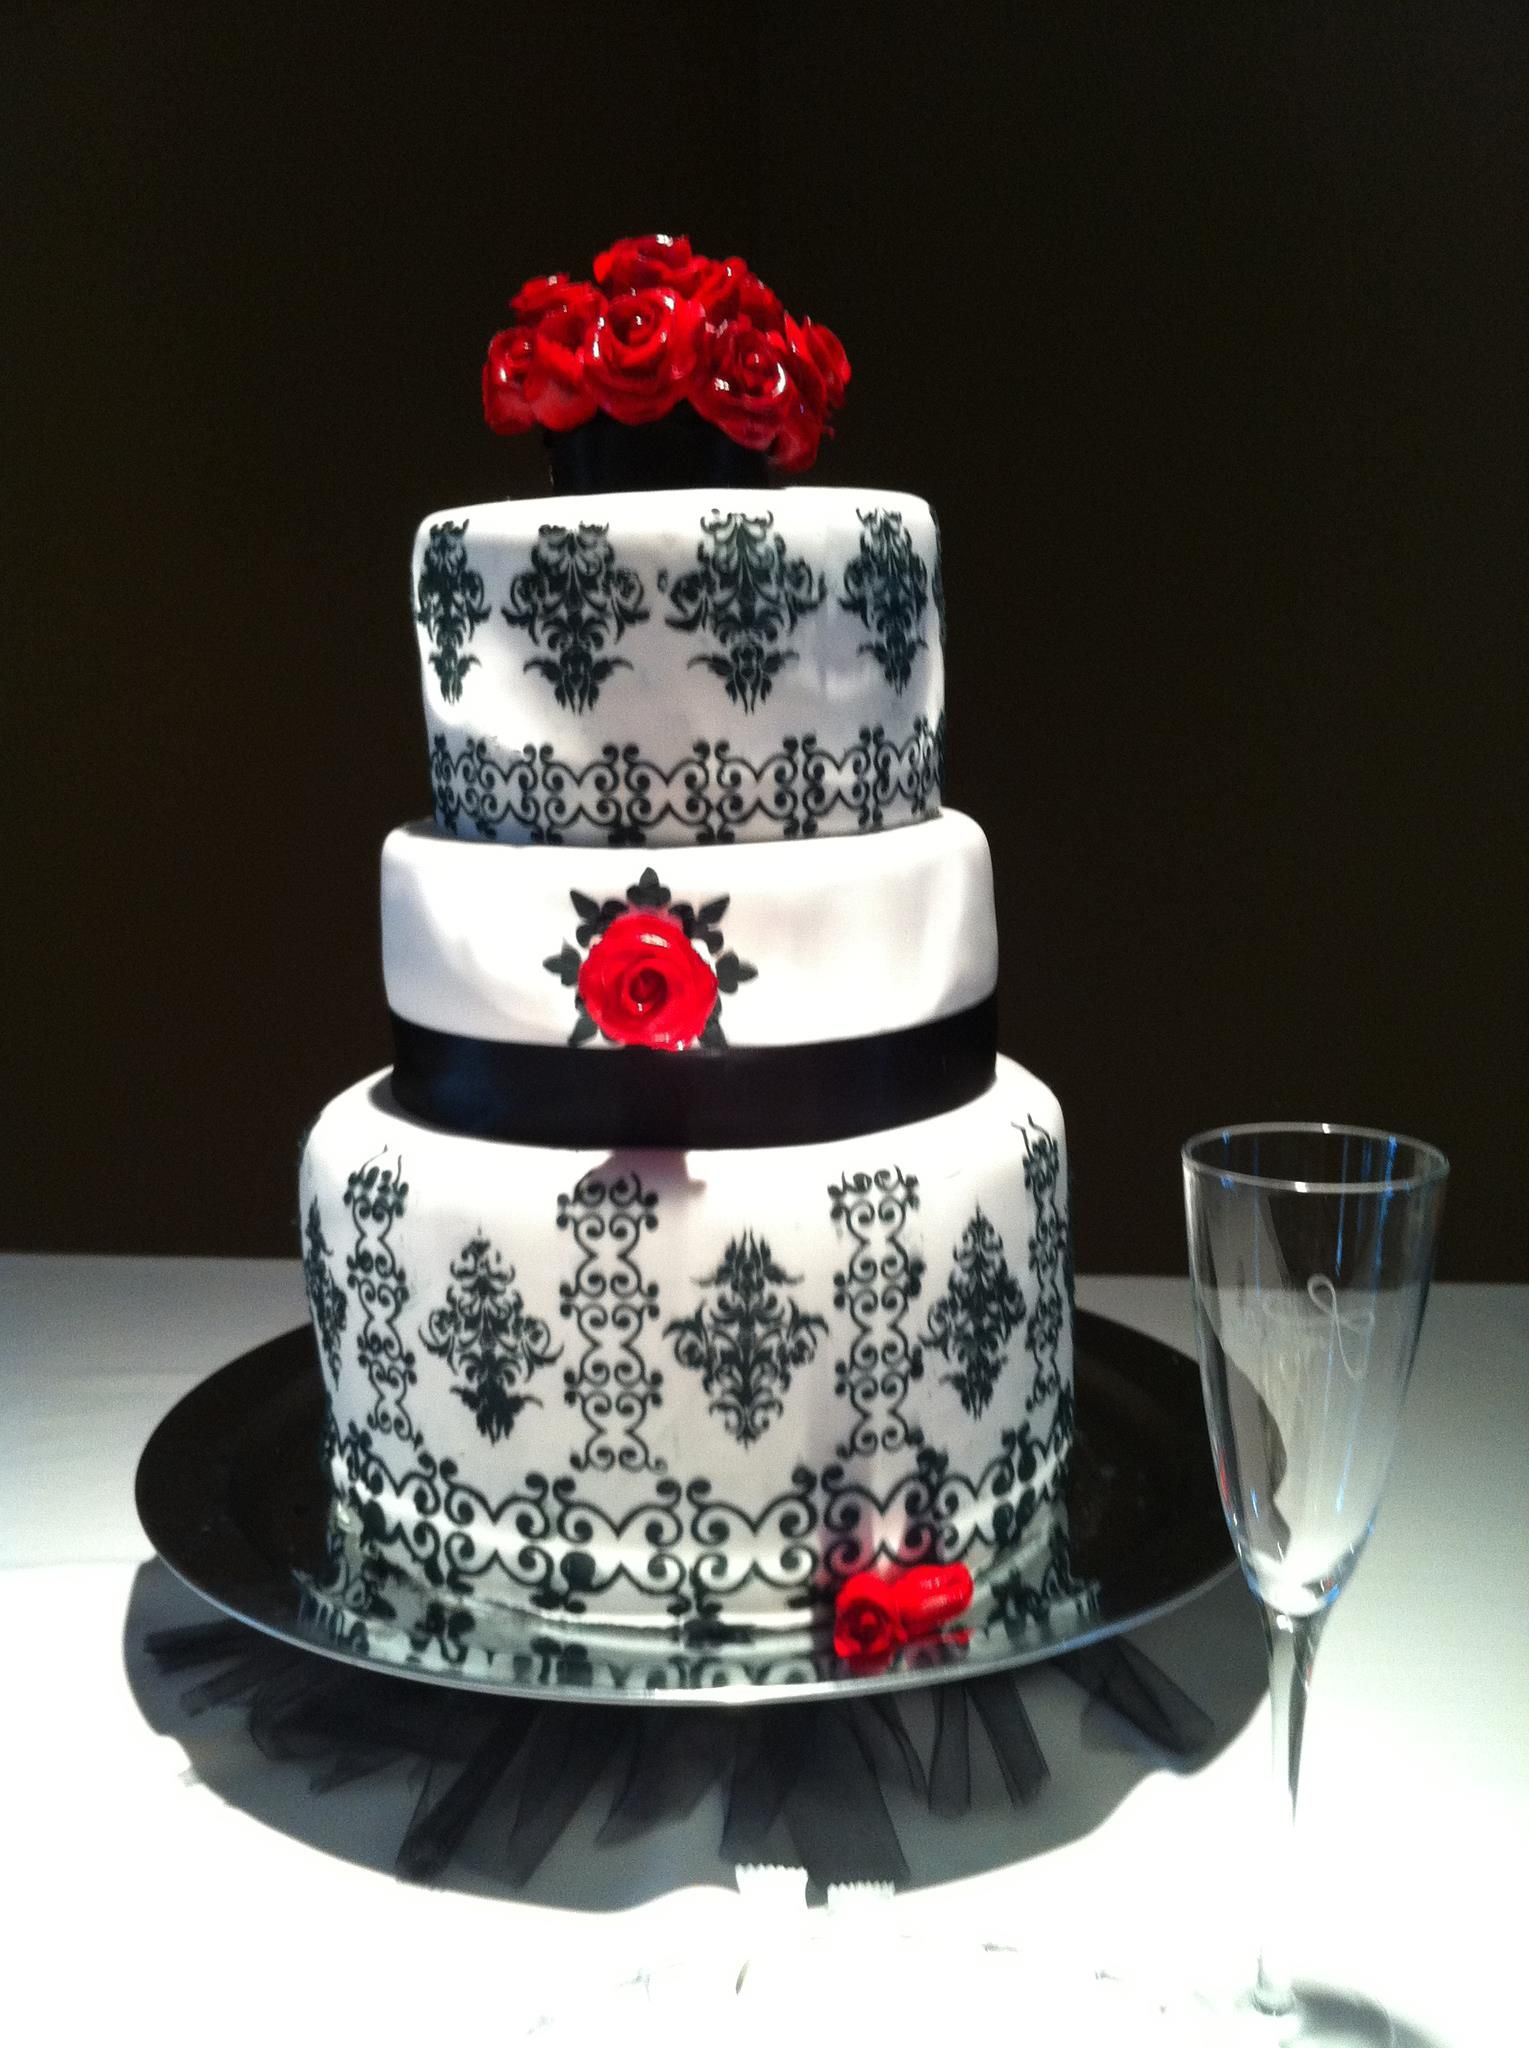 Fondant covered wedding cake hand stenciled with buttercream roses